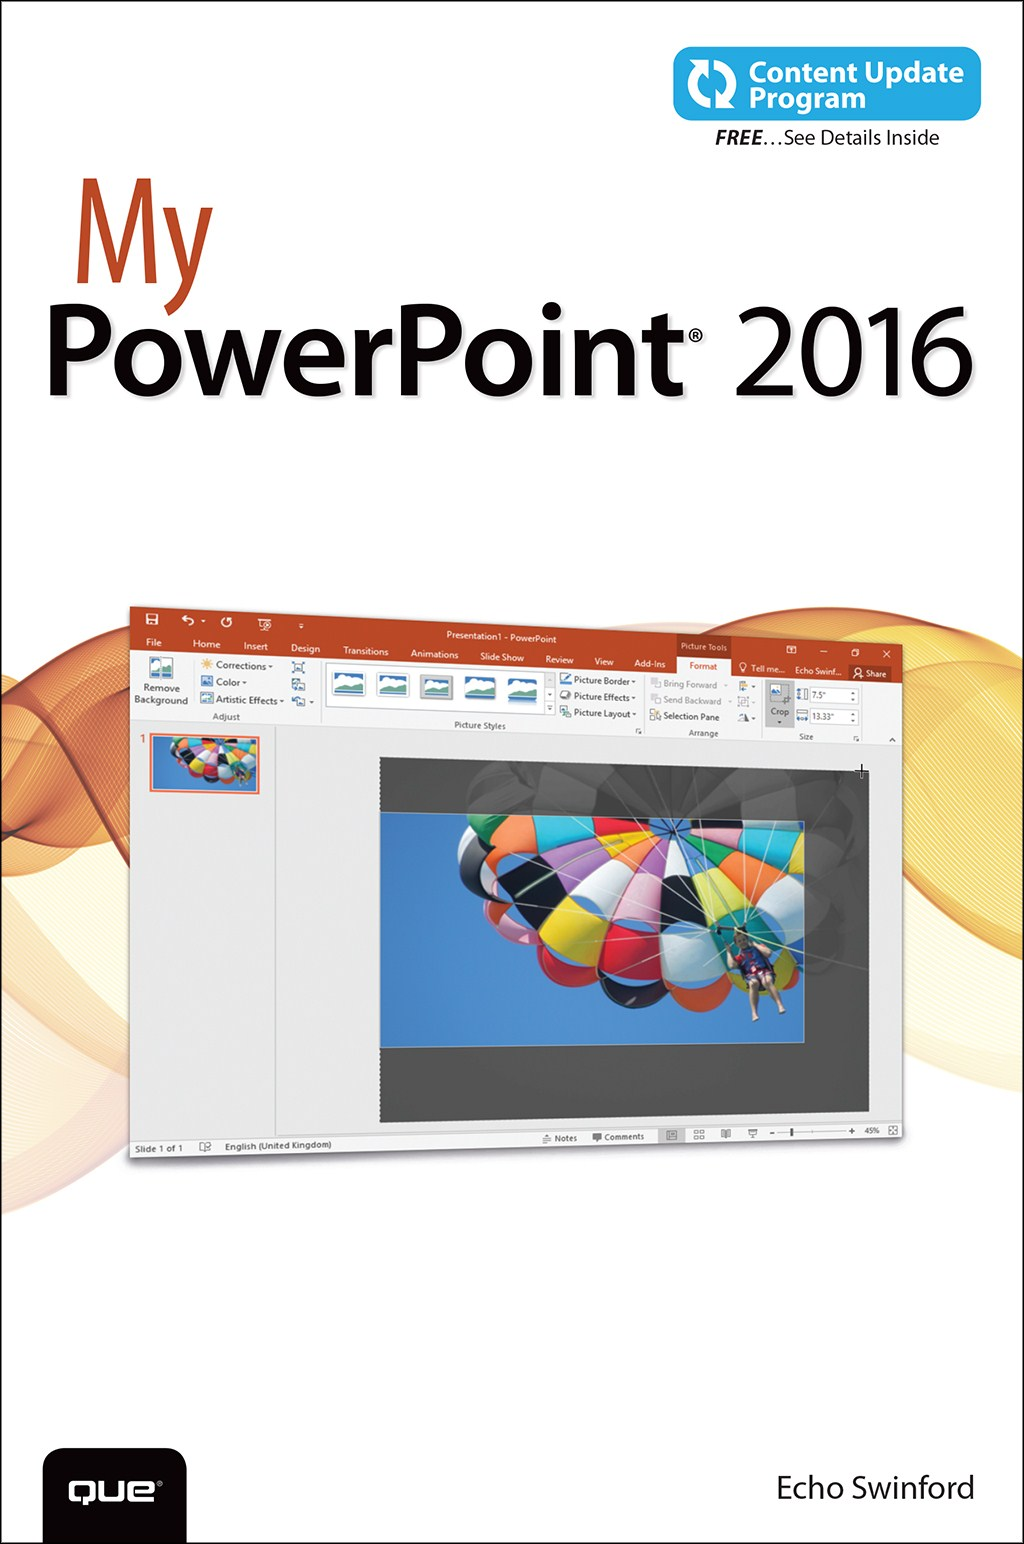 My PowerPoint 2016 (includes Content Update Program)